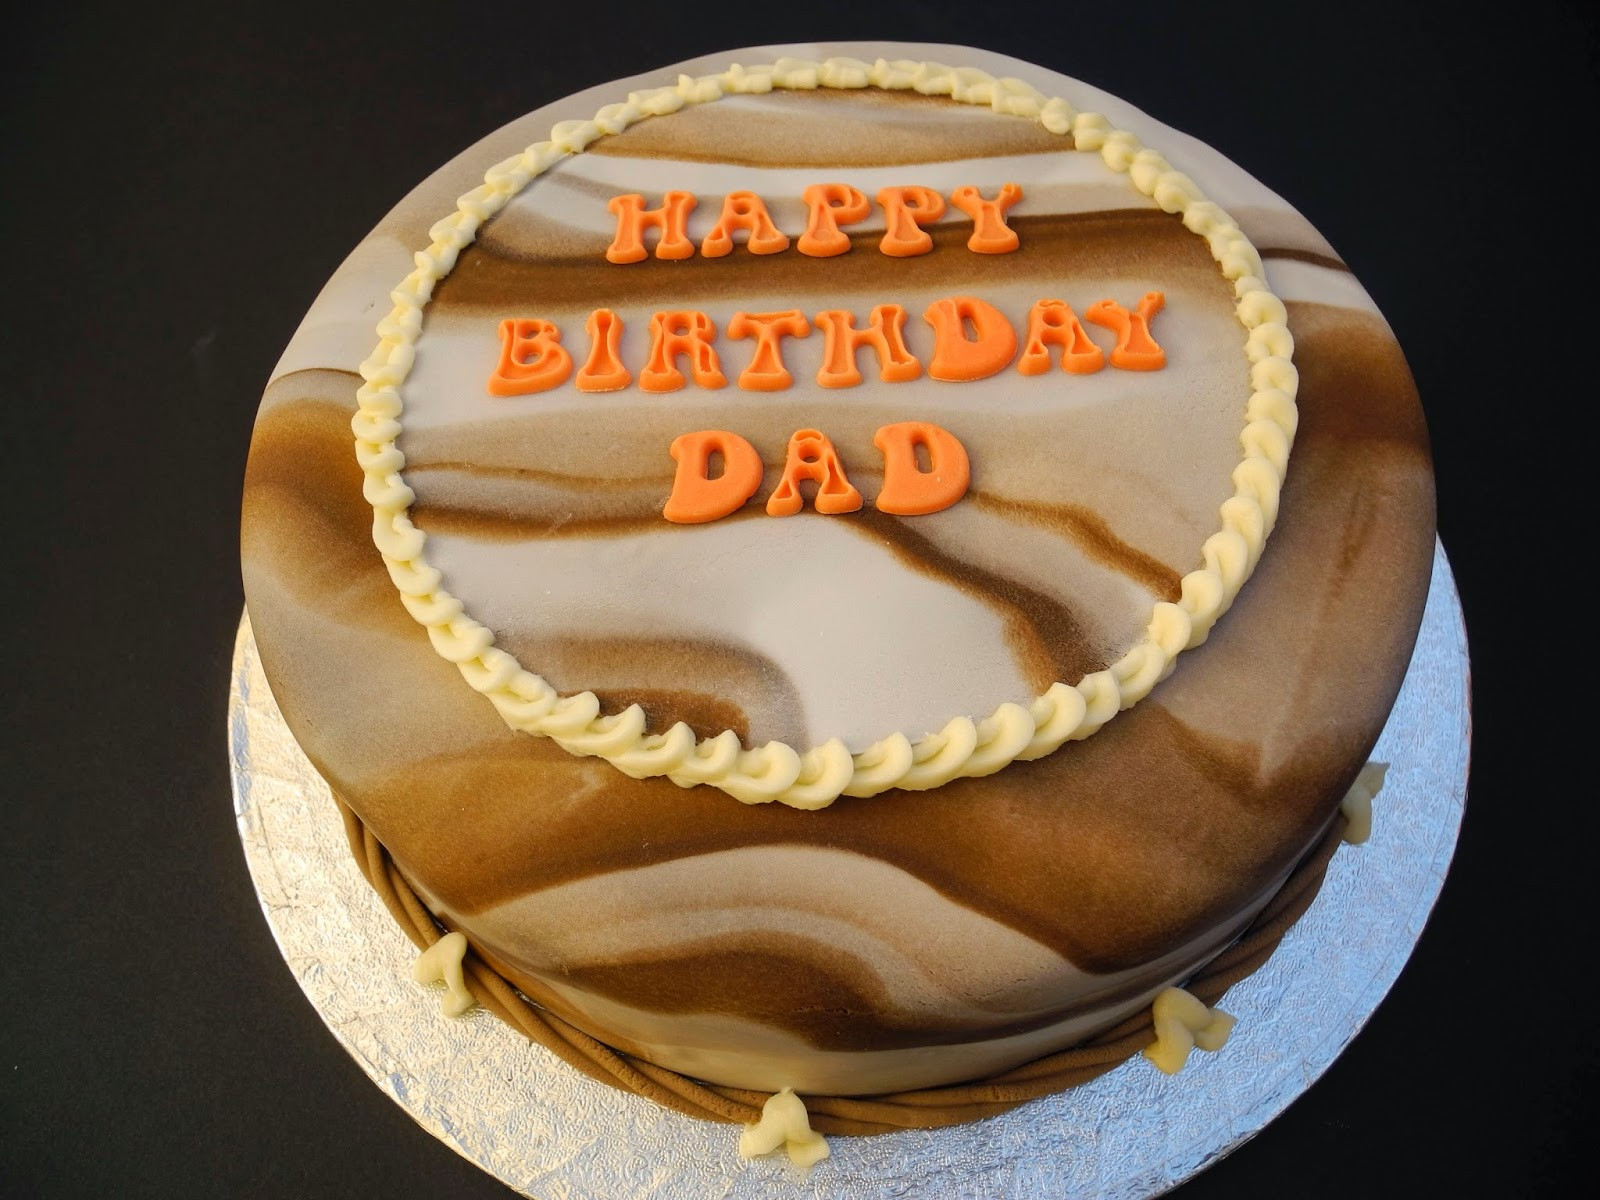 Happy Birthday Dad Cake  Birthday Wishes For Father Page 8